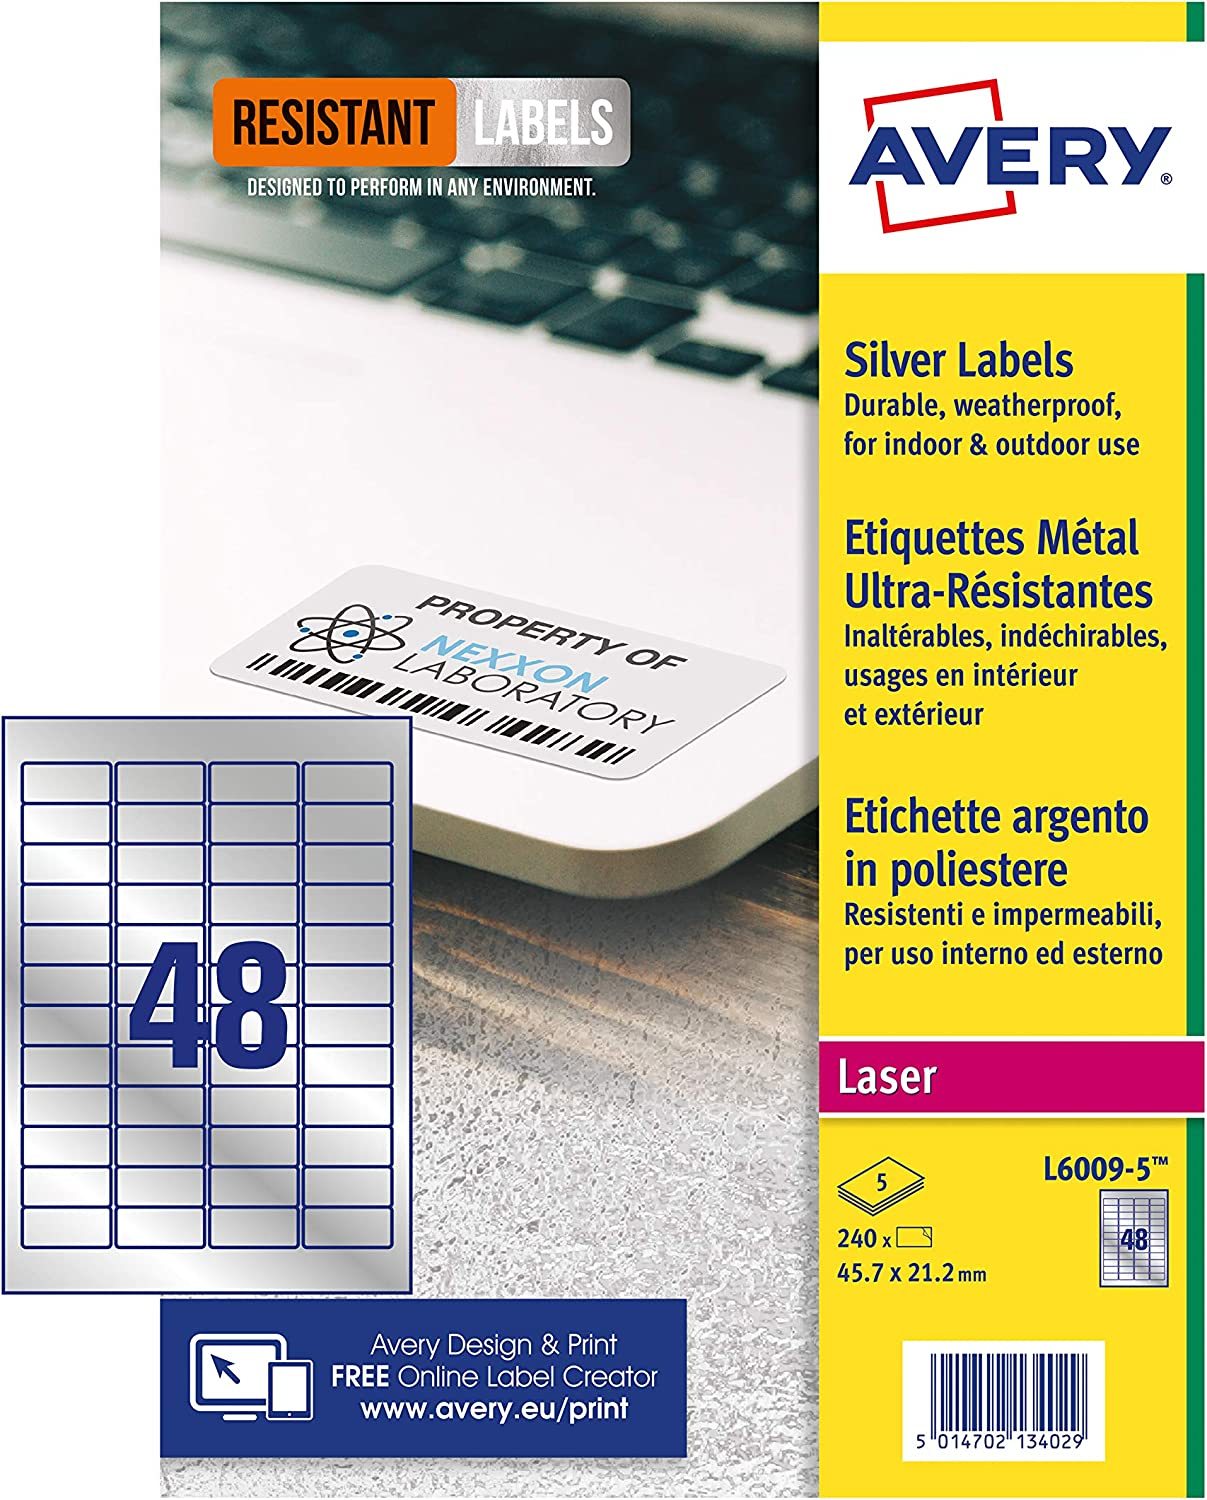 Avery L6009-5 Resistant Labels, Silver (A4 Sheet of 46 x 21 mm, 240 Labels)